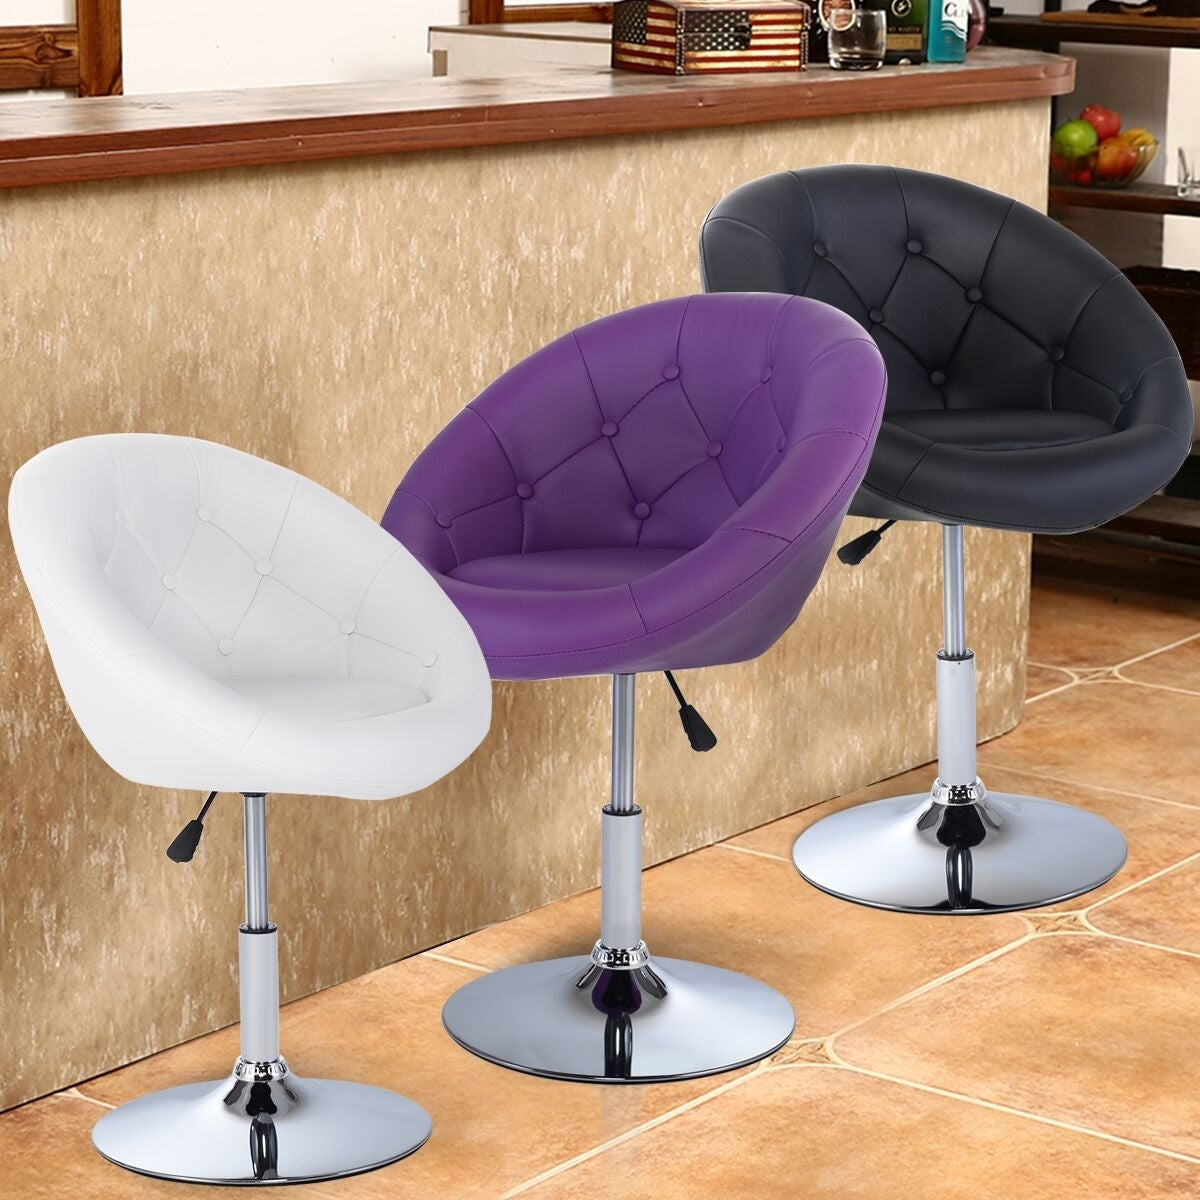 Costway 1PC PU Leather Adjustable Modern Swivel Round Accent Chair 3 color - Single (White)